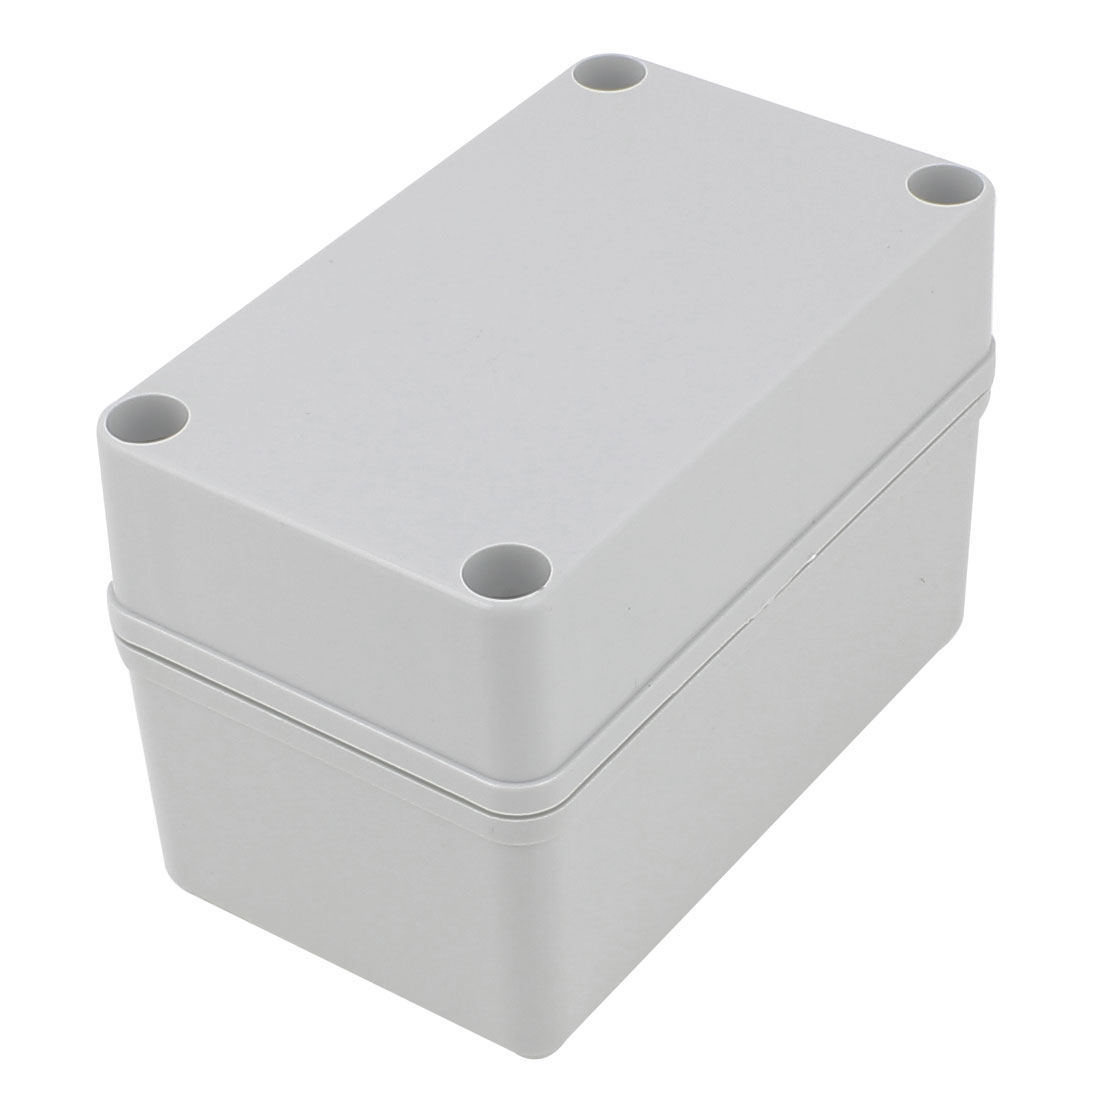 Dustproof IP56 Junction Box DIY Terminal Connect Enclosure Adaptable 122mm x 72mm x 62mm